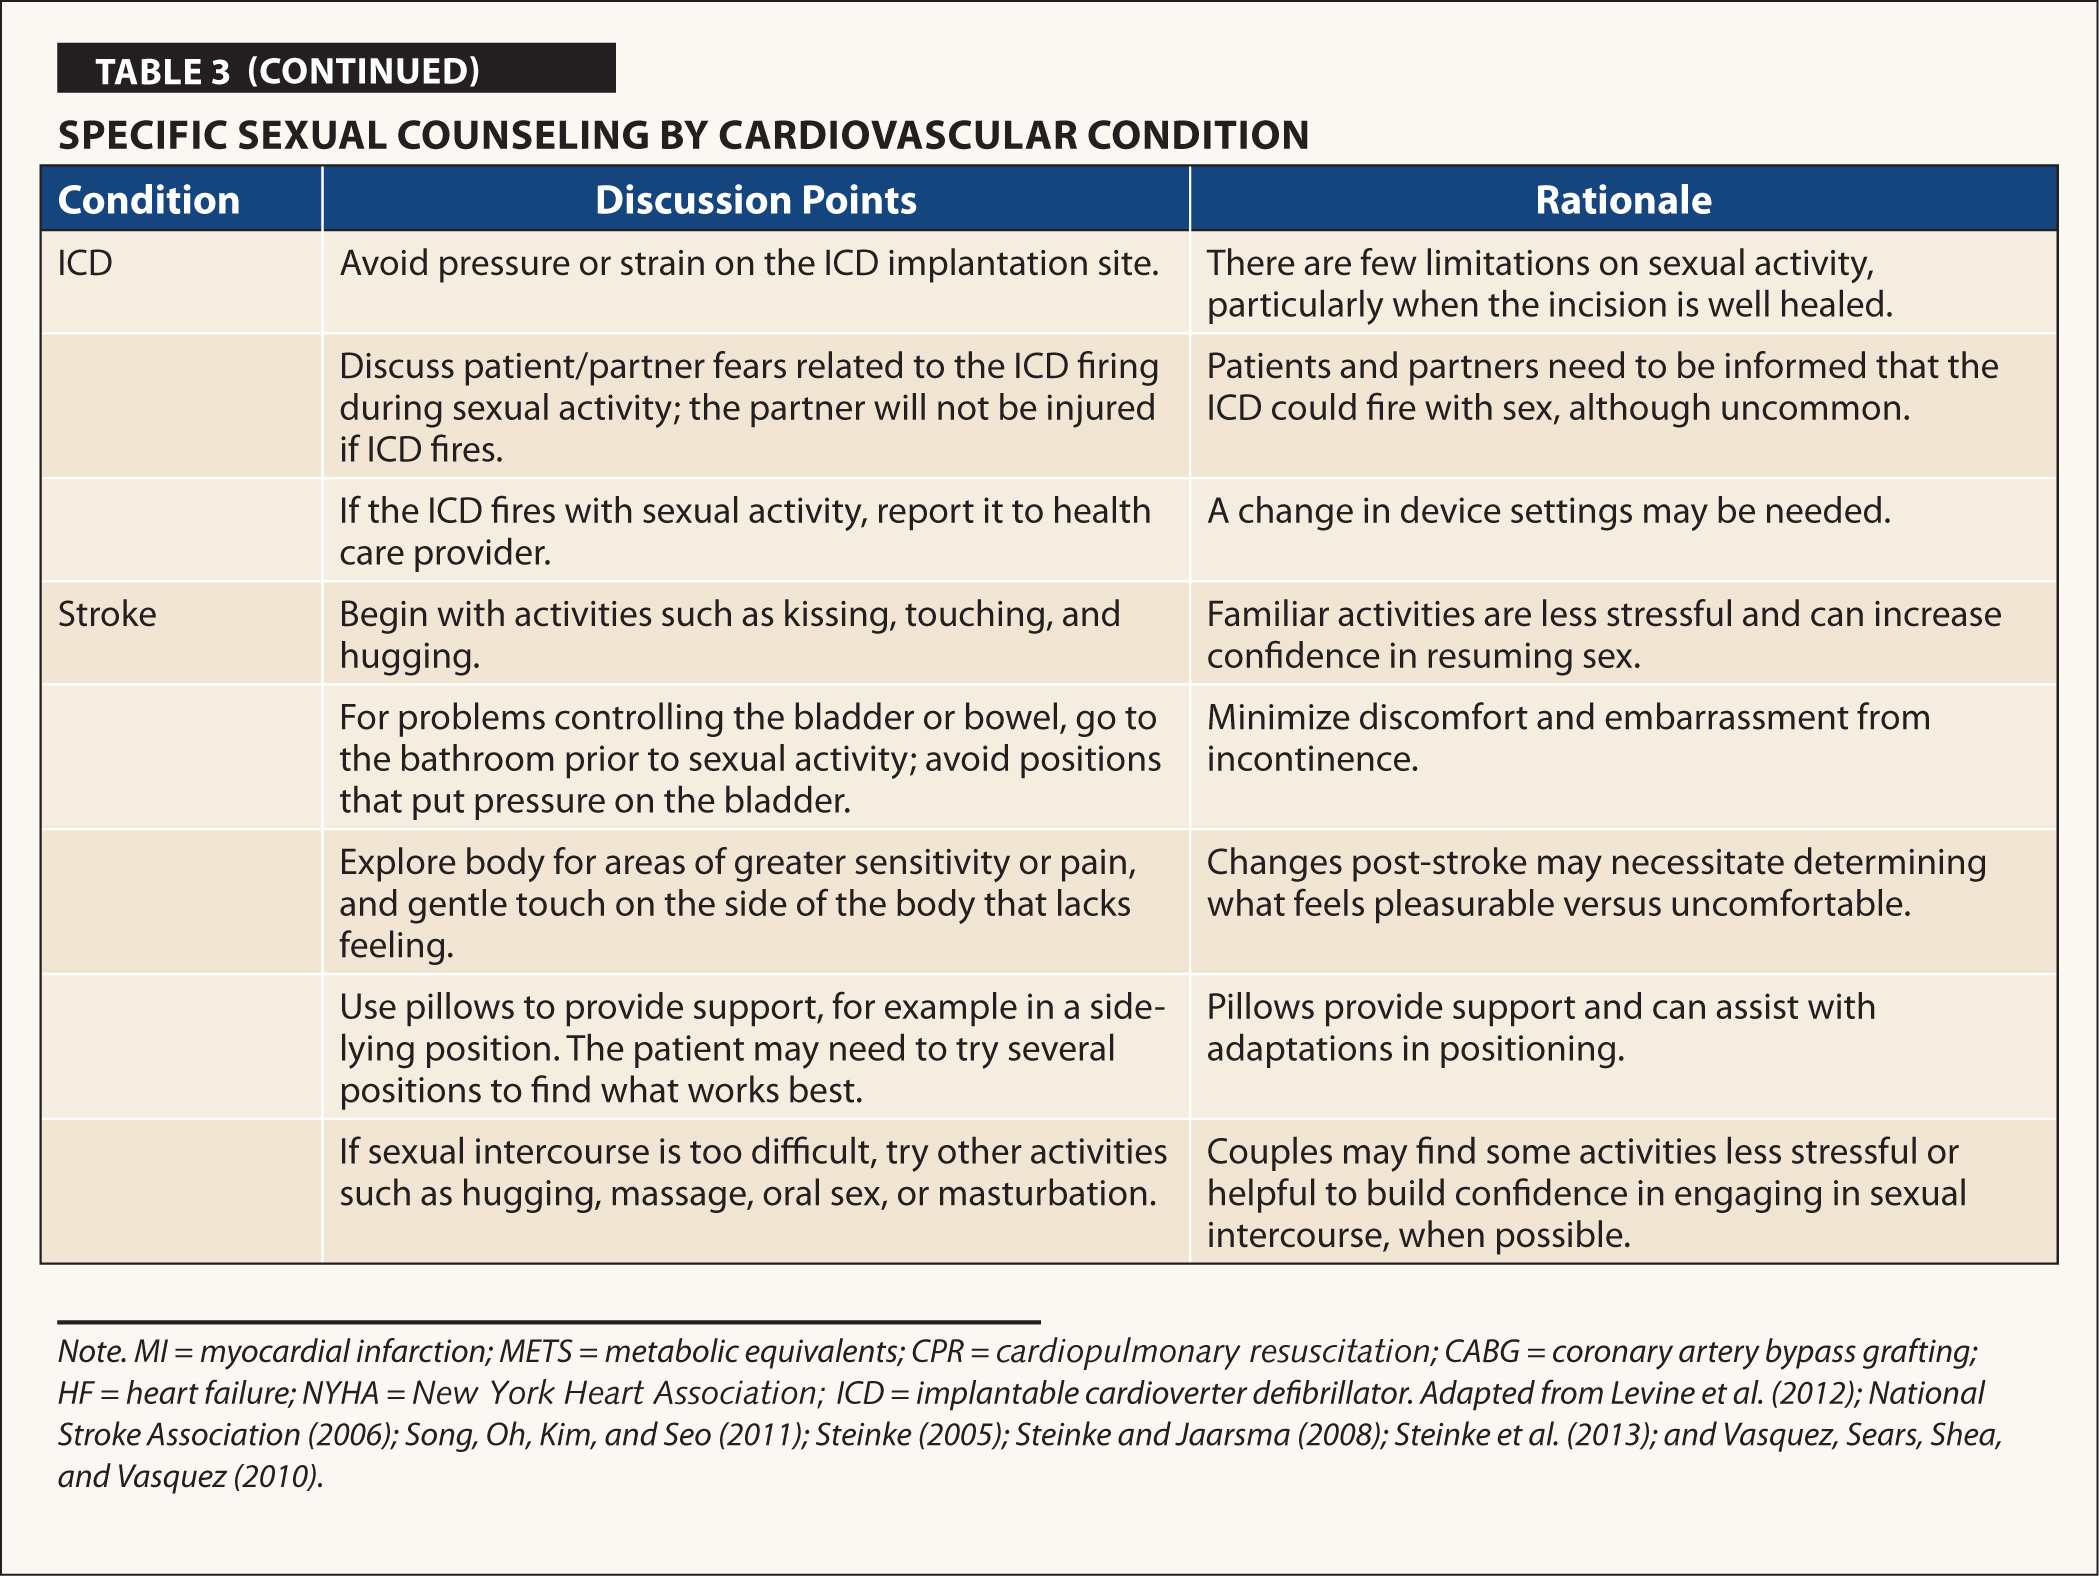 Specific Sexual Counseling by Cardiovascular Condition